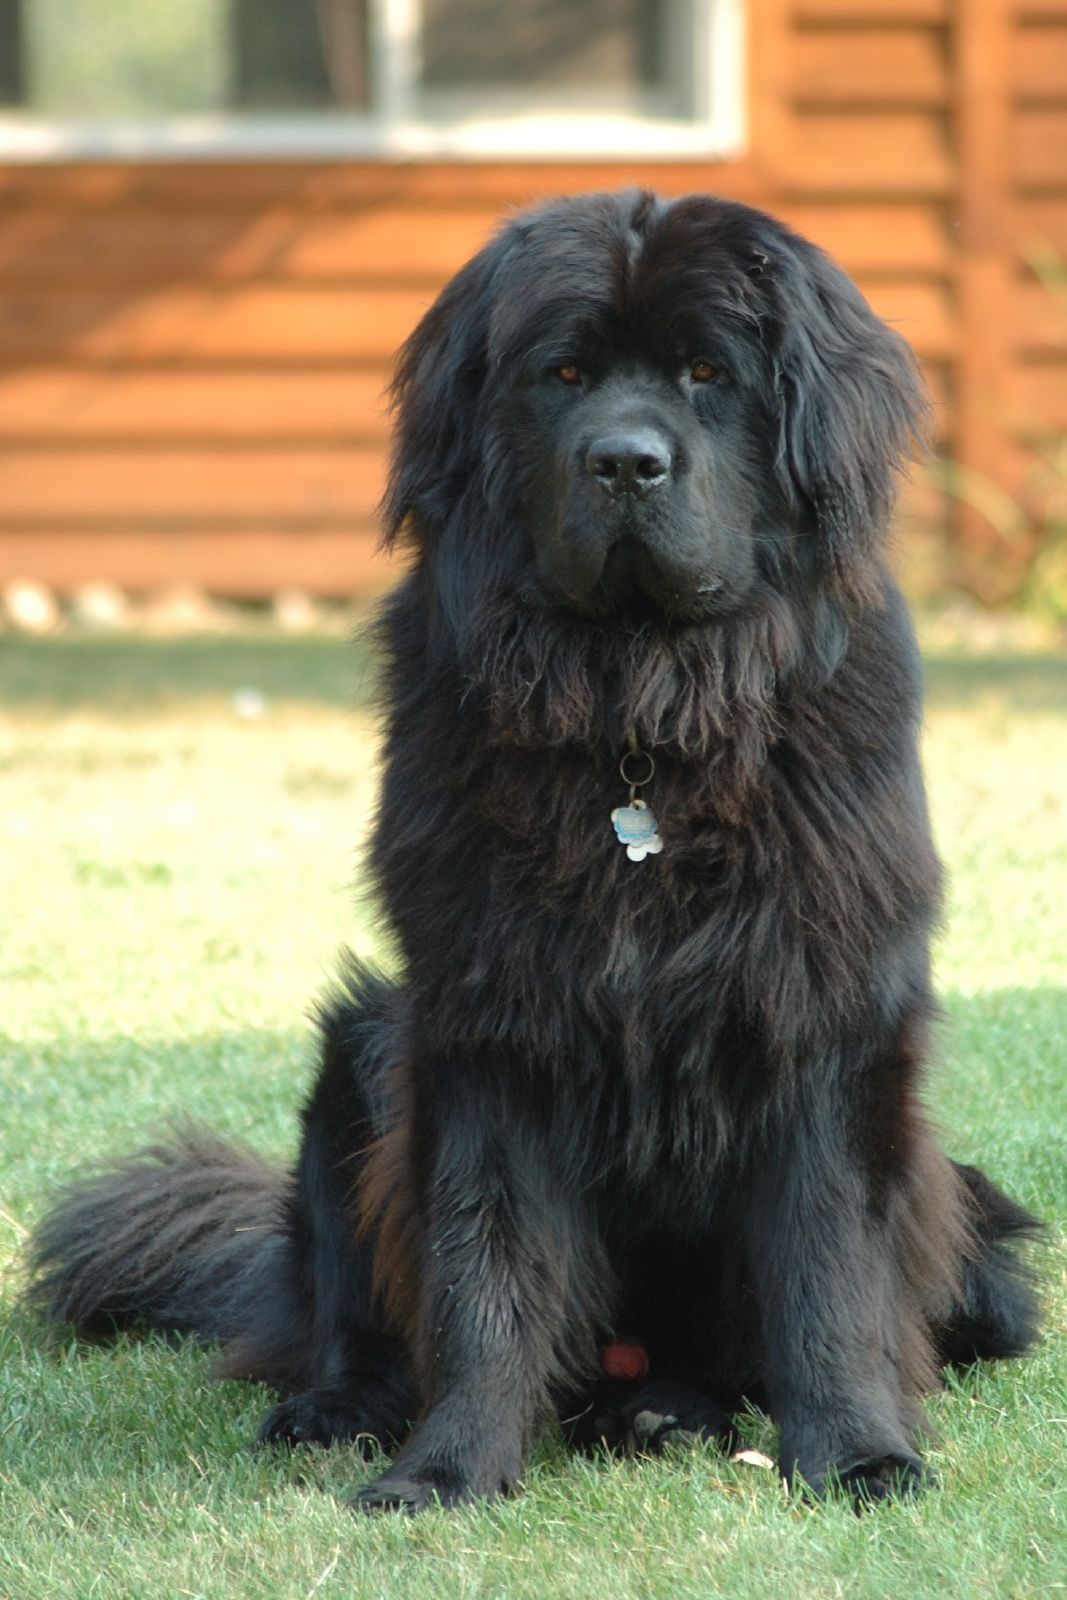 Newfoundland dog breed photos